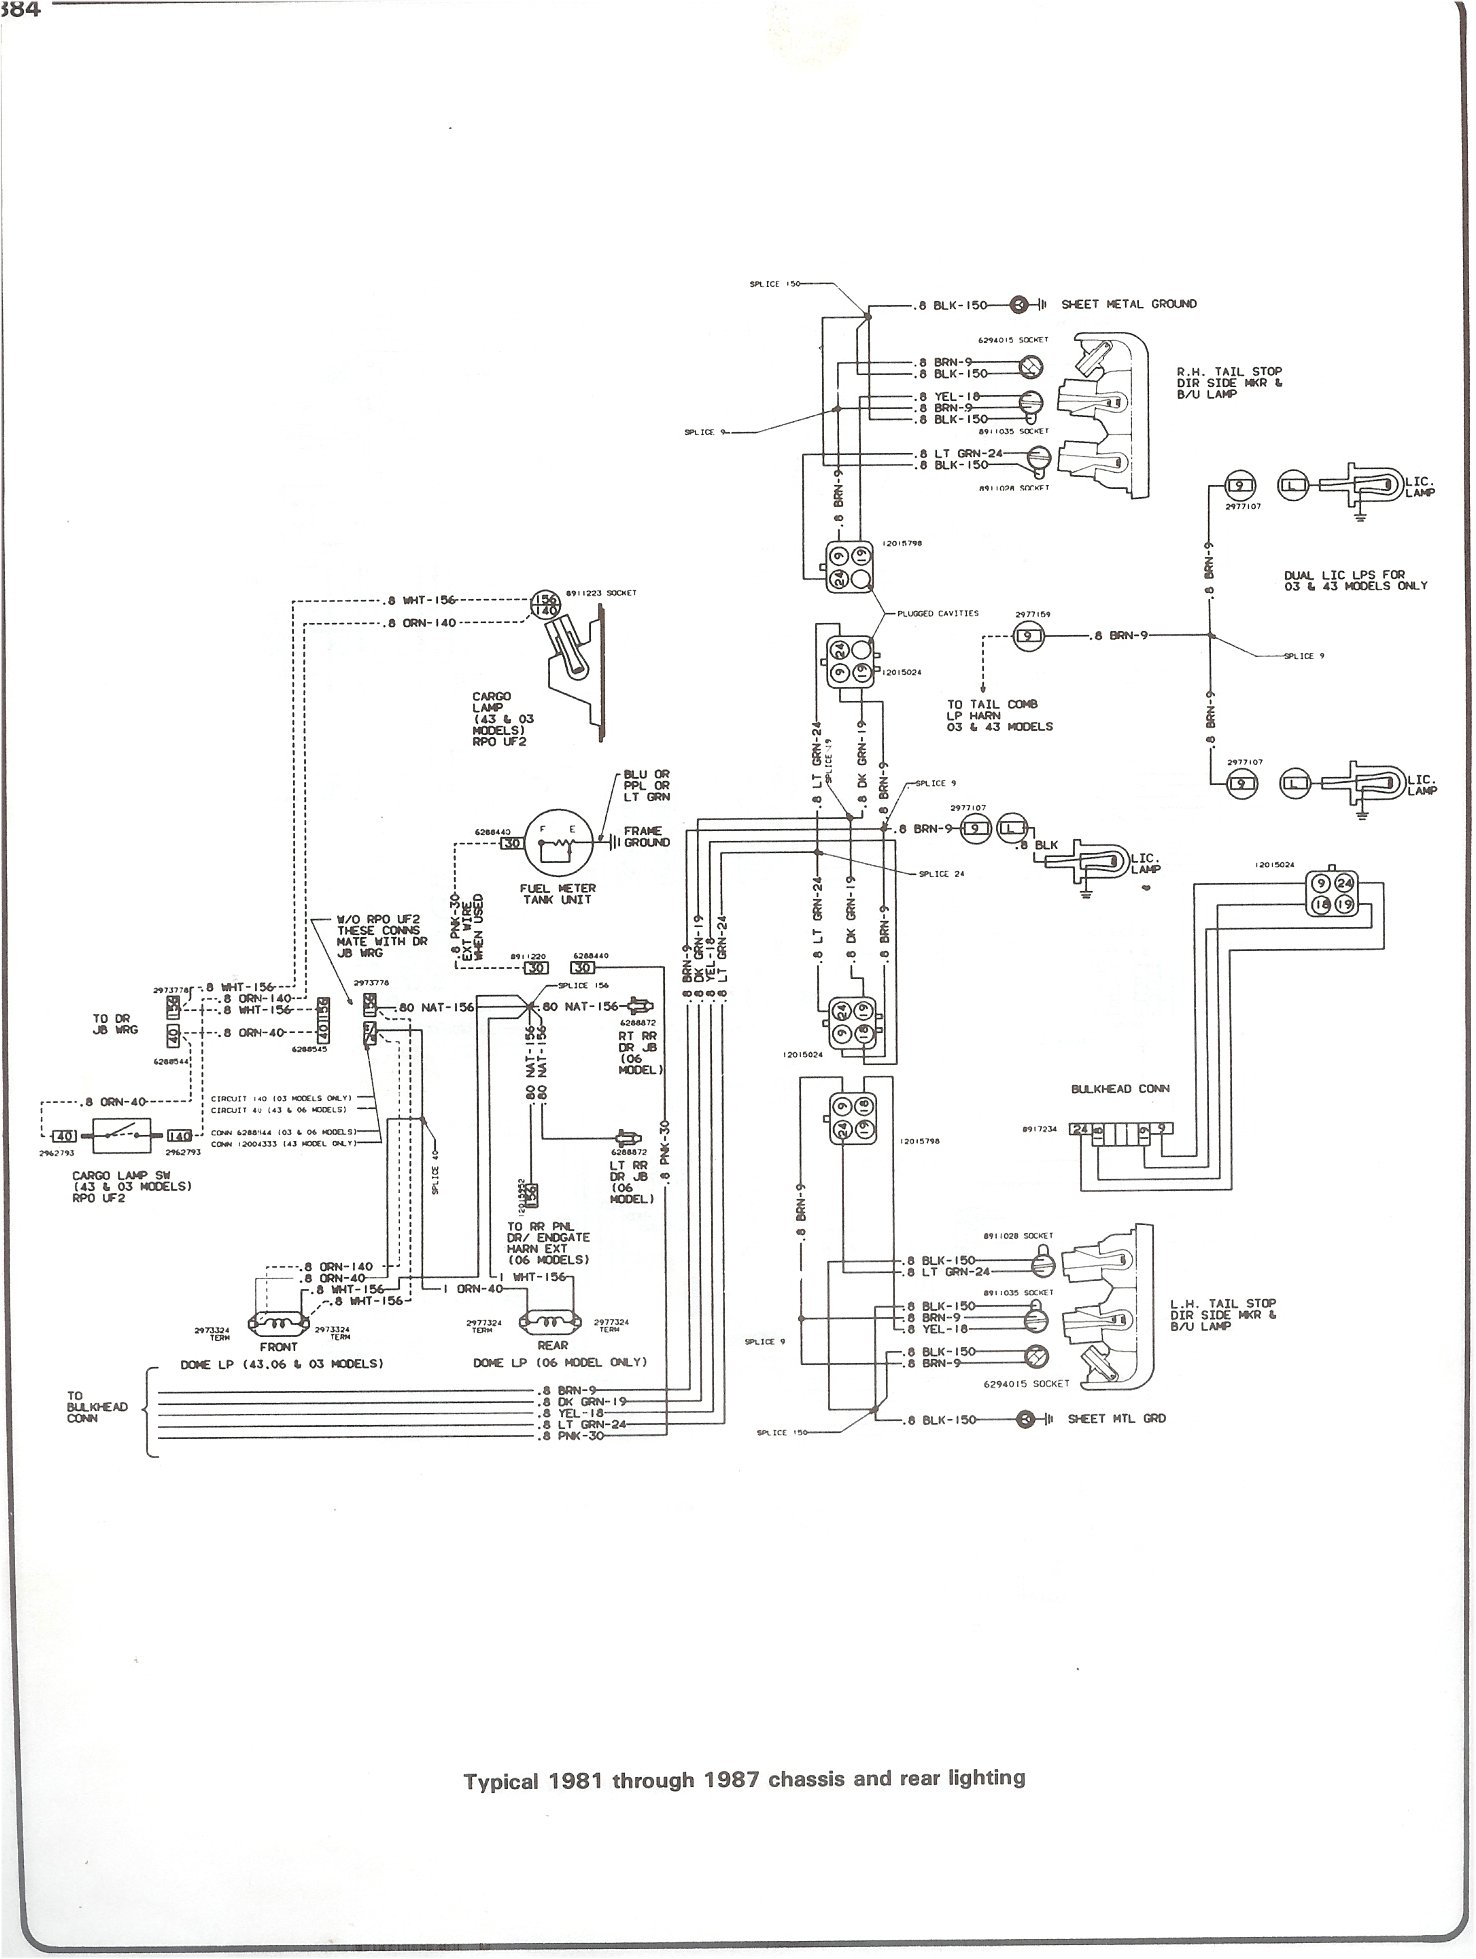 83 Sbc Wiring Diagram Library 1963 Cadillac Deville Wire 81 87 Chassis And Rear Lighting Complete 73 Diagrams